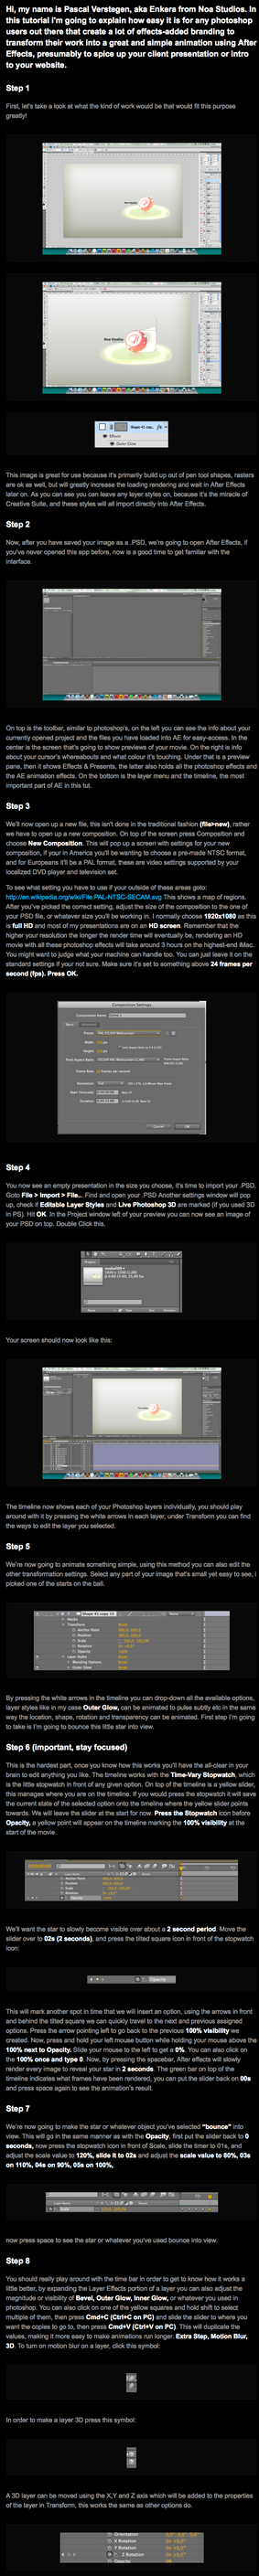 AfterEffects for PS users by PascalPixel